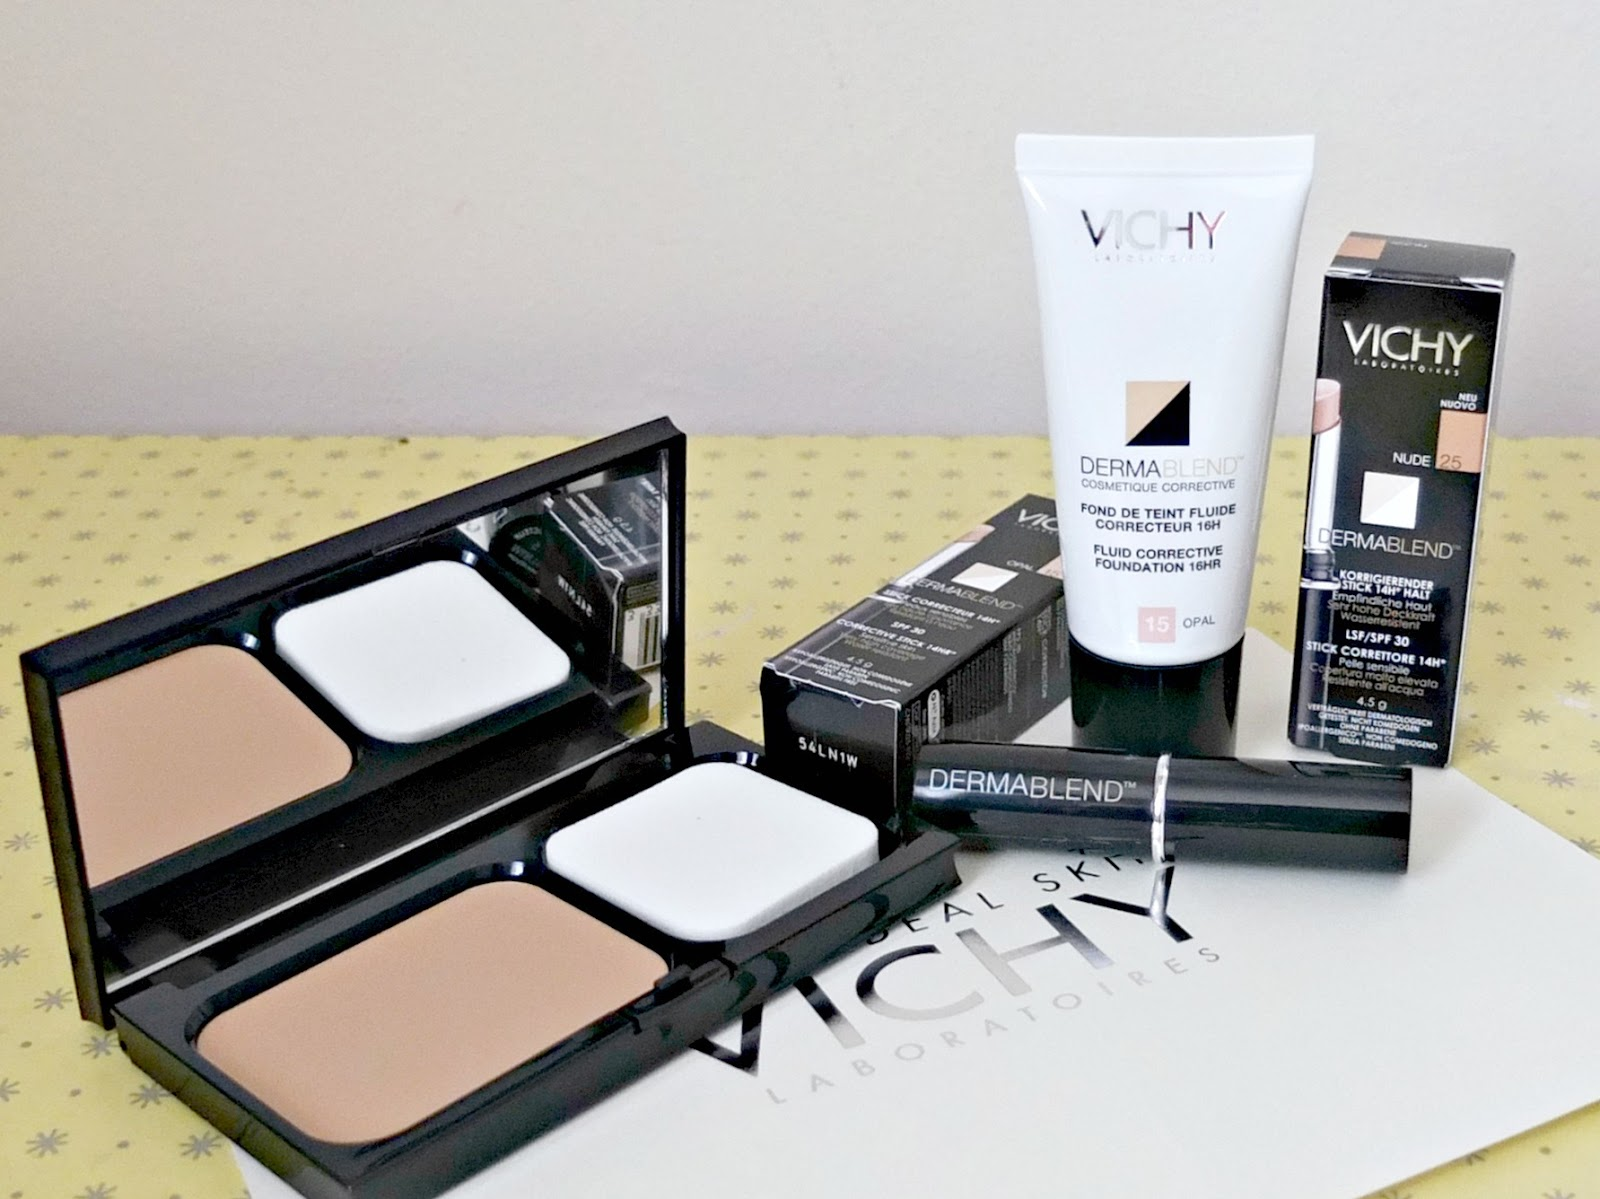 vichy dermablend review and swatches